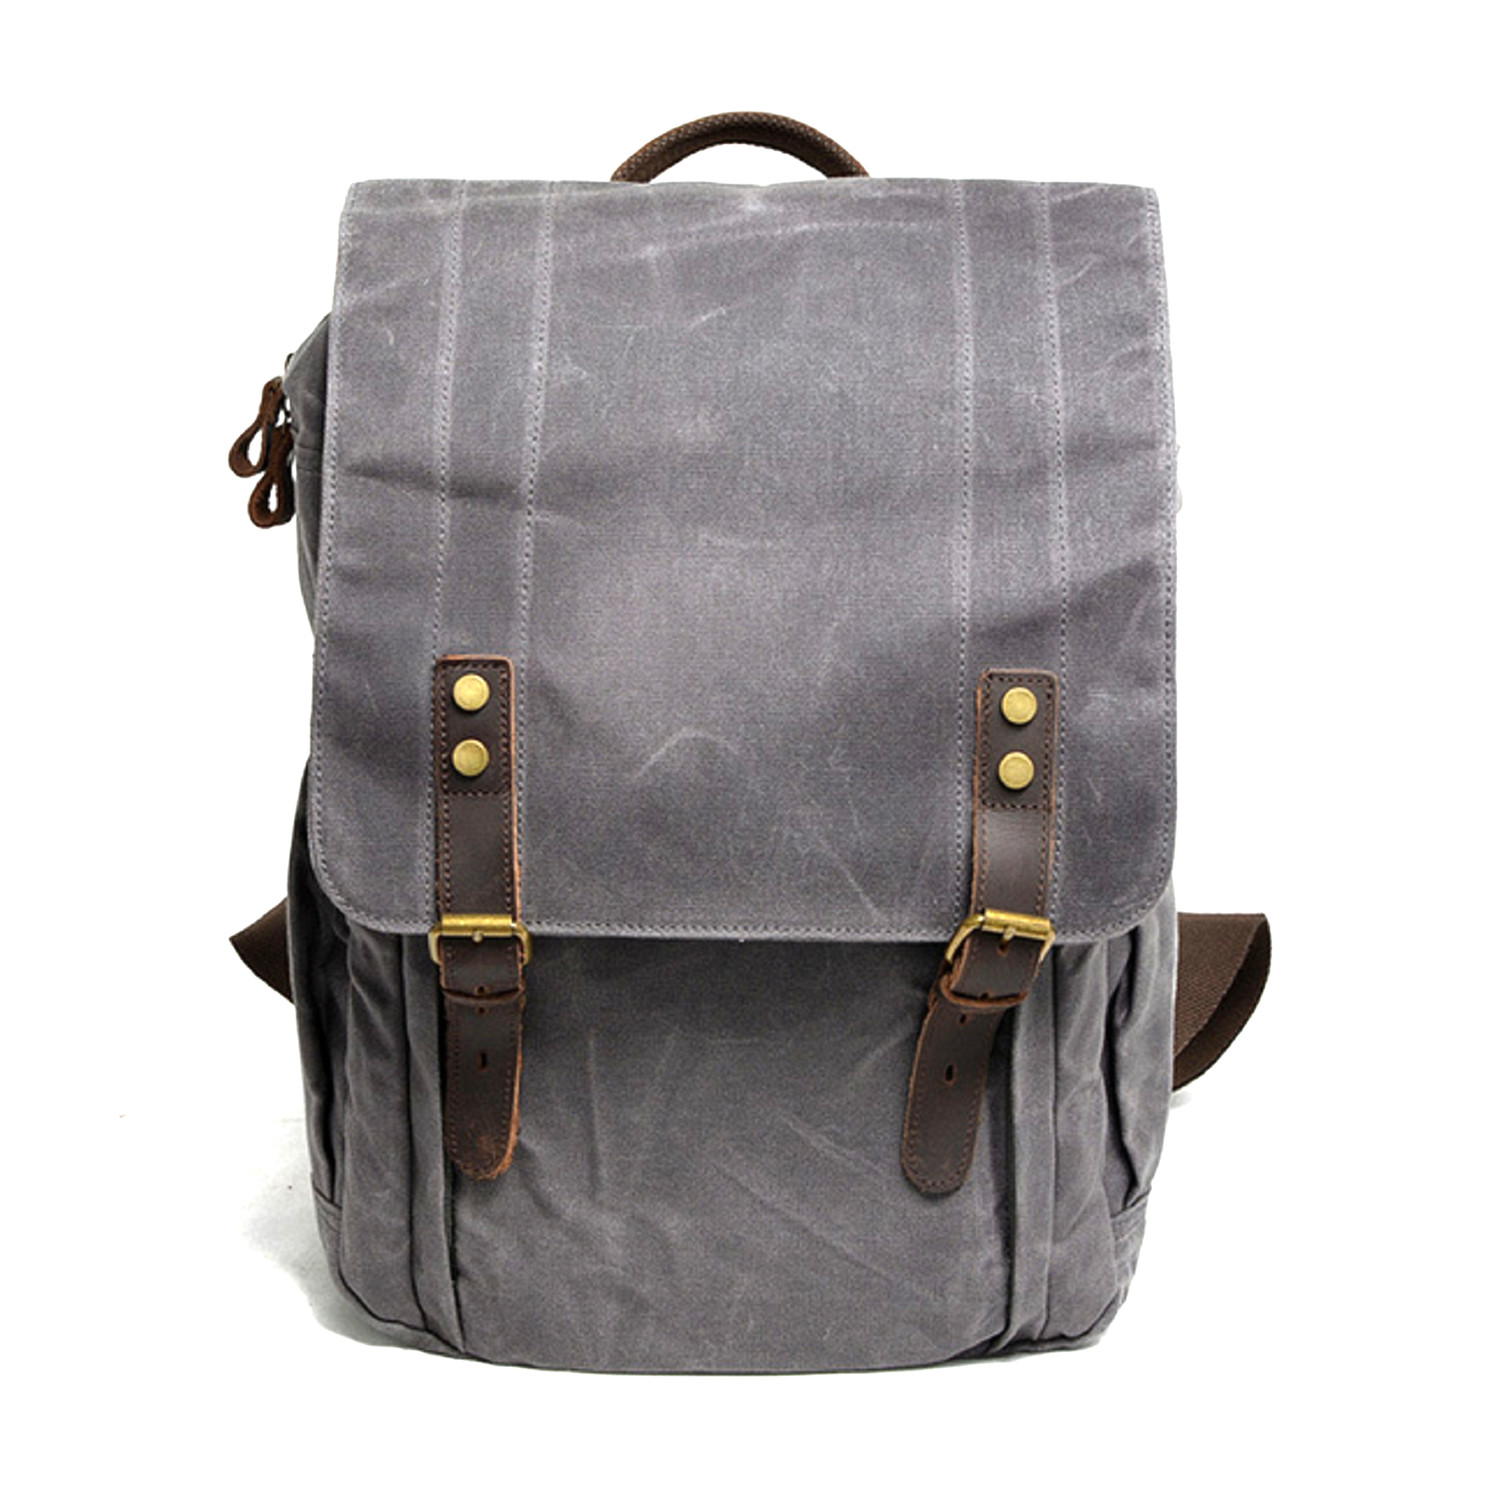 No. 766 Canvas Camera Backpack (Black) - OwnBag - Touch of Modern